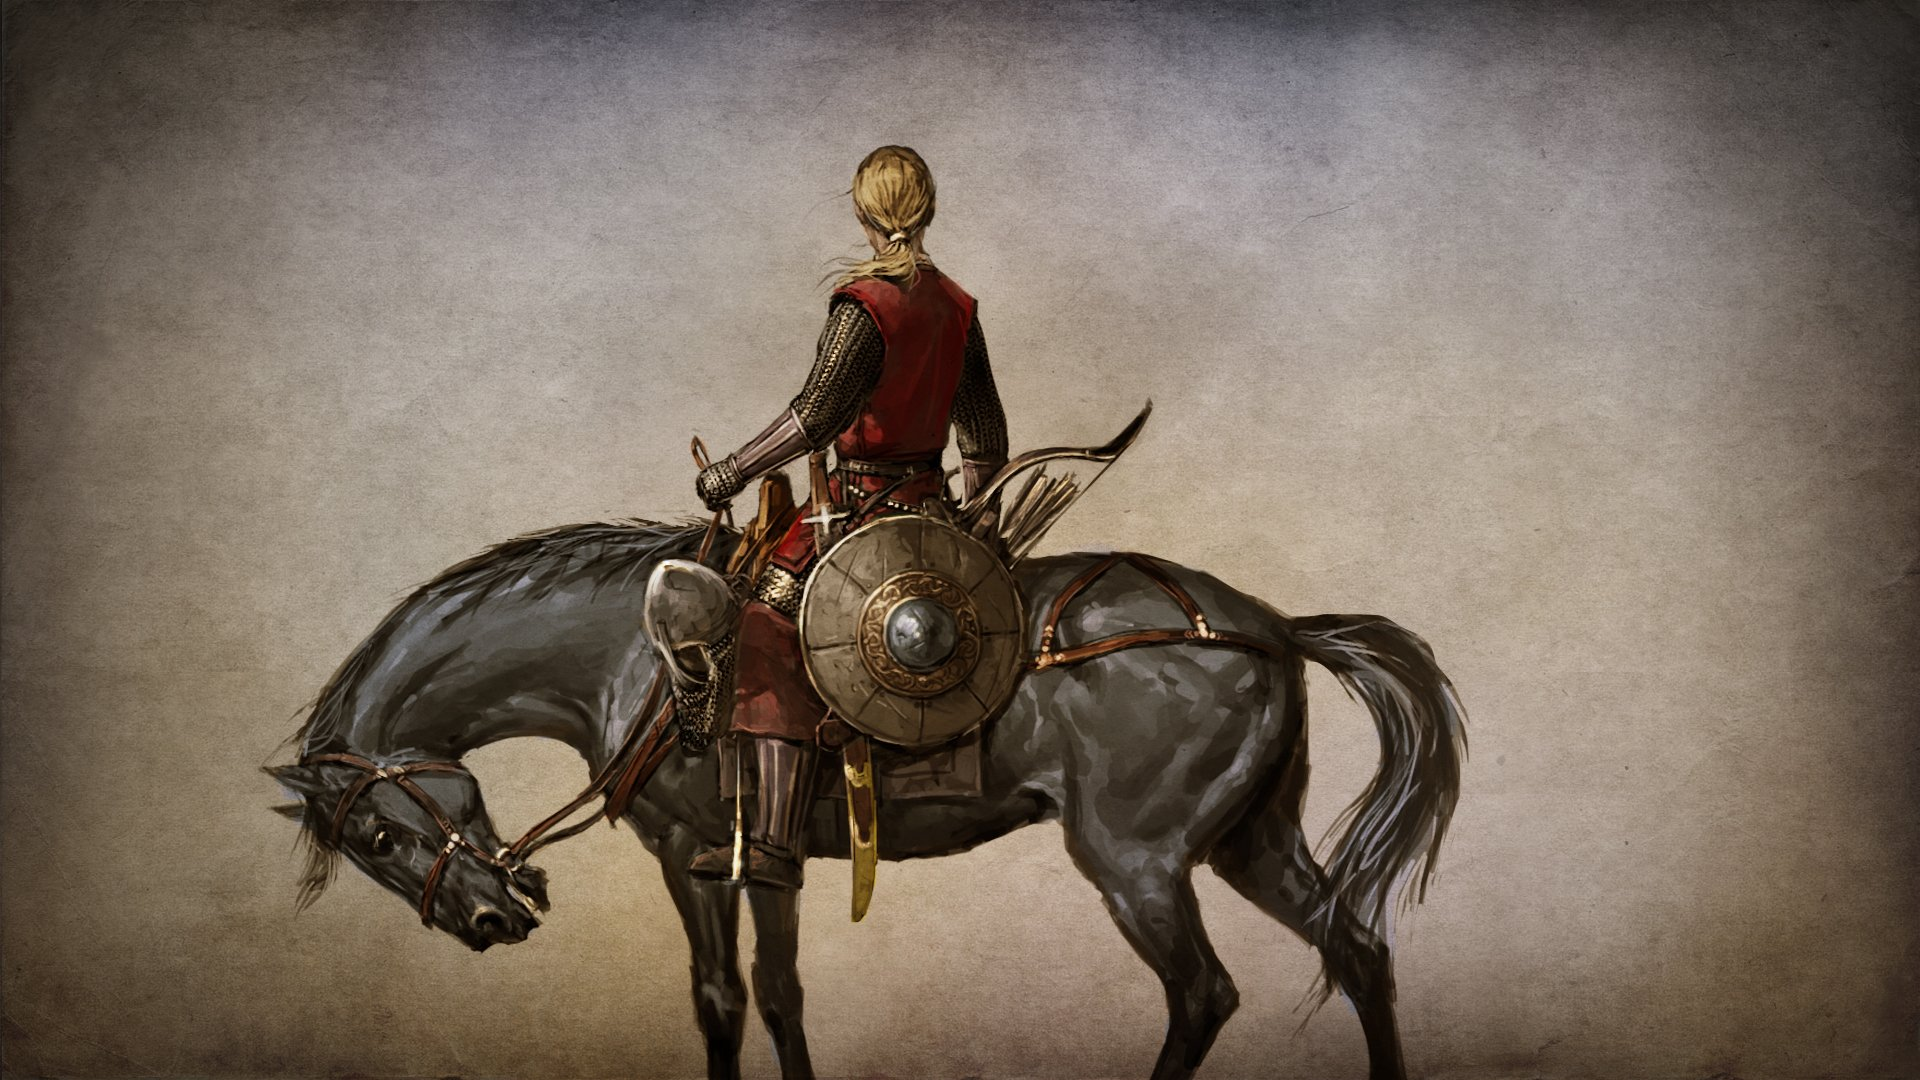 MOUNT AND BLADE fantasy warrior armor horse g wallpaper 1920x1080 1920x1080